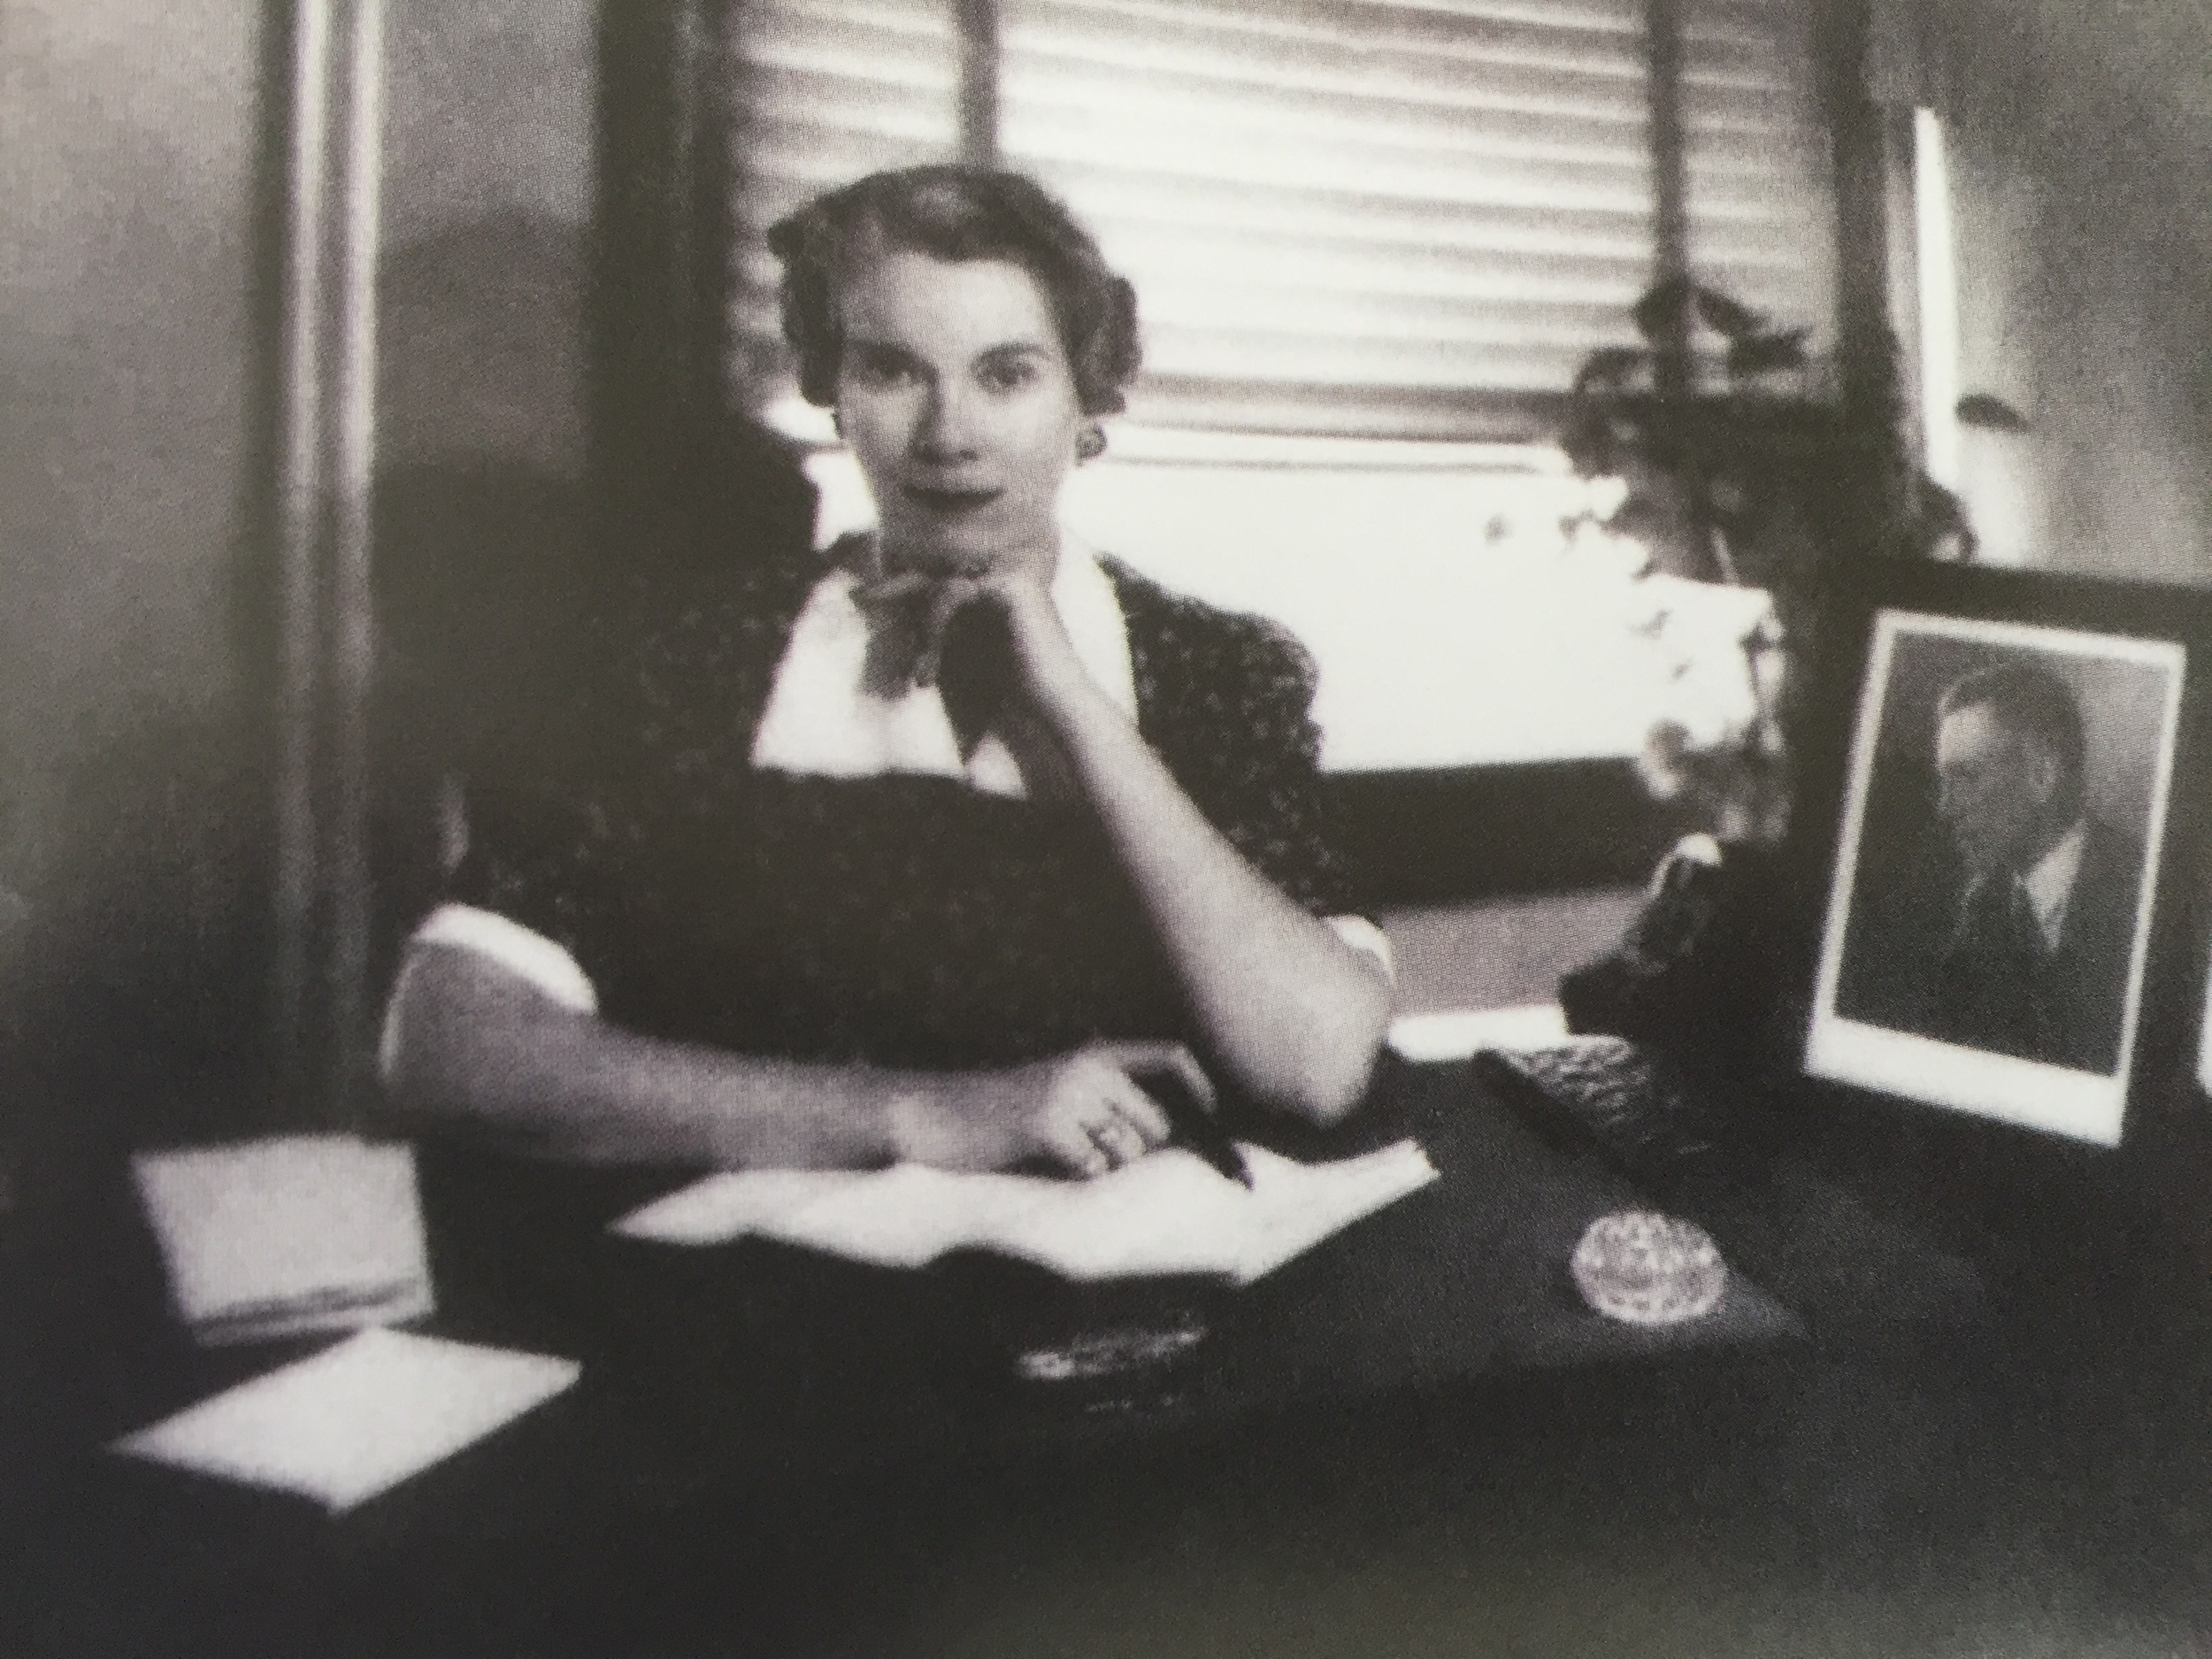 Kathleen Hocker, daughter of W.W. Jones